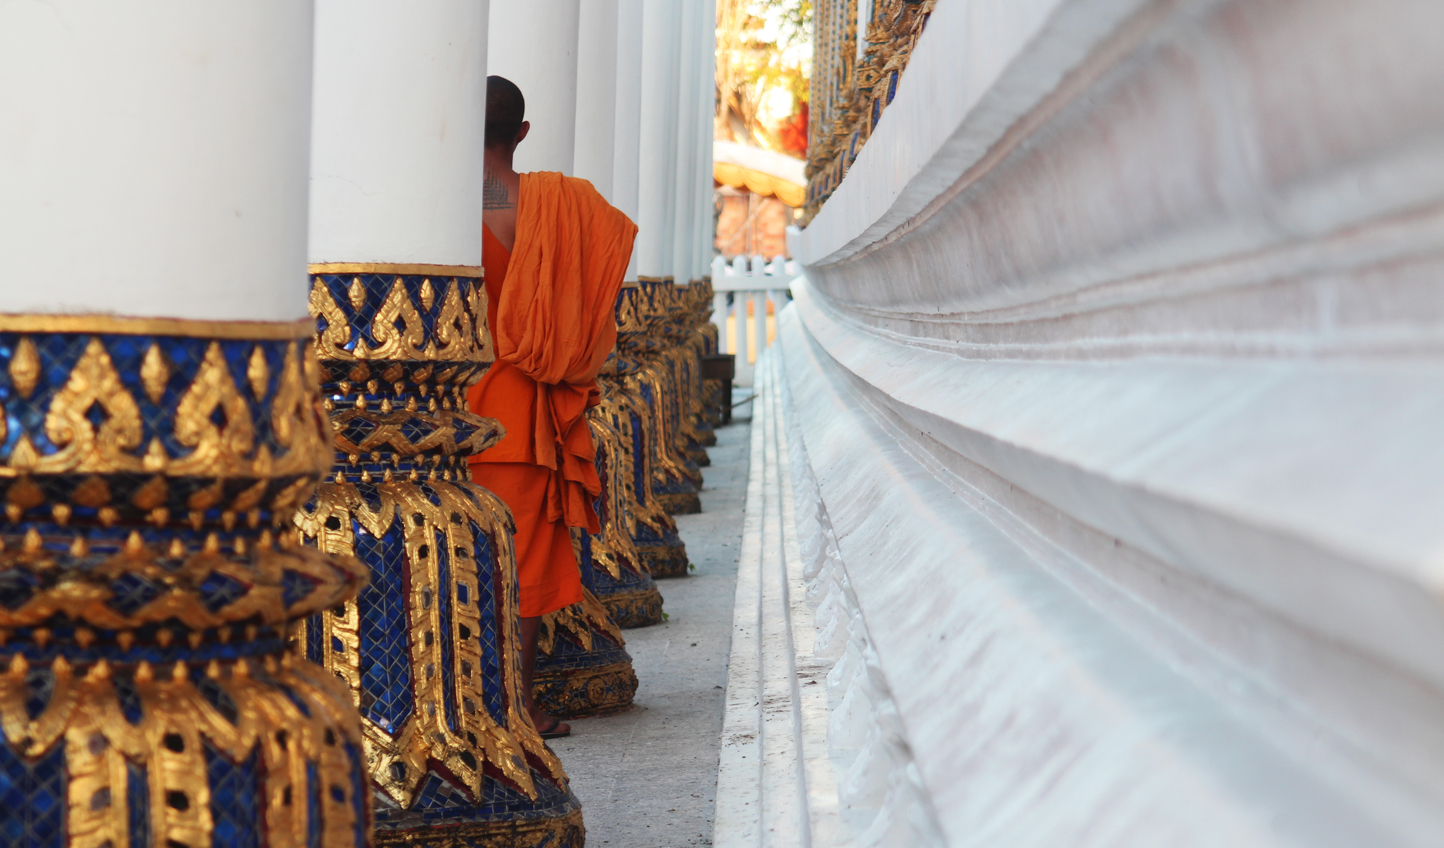 Wander through temples and discover Buddhist heritage